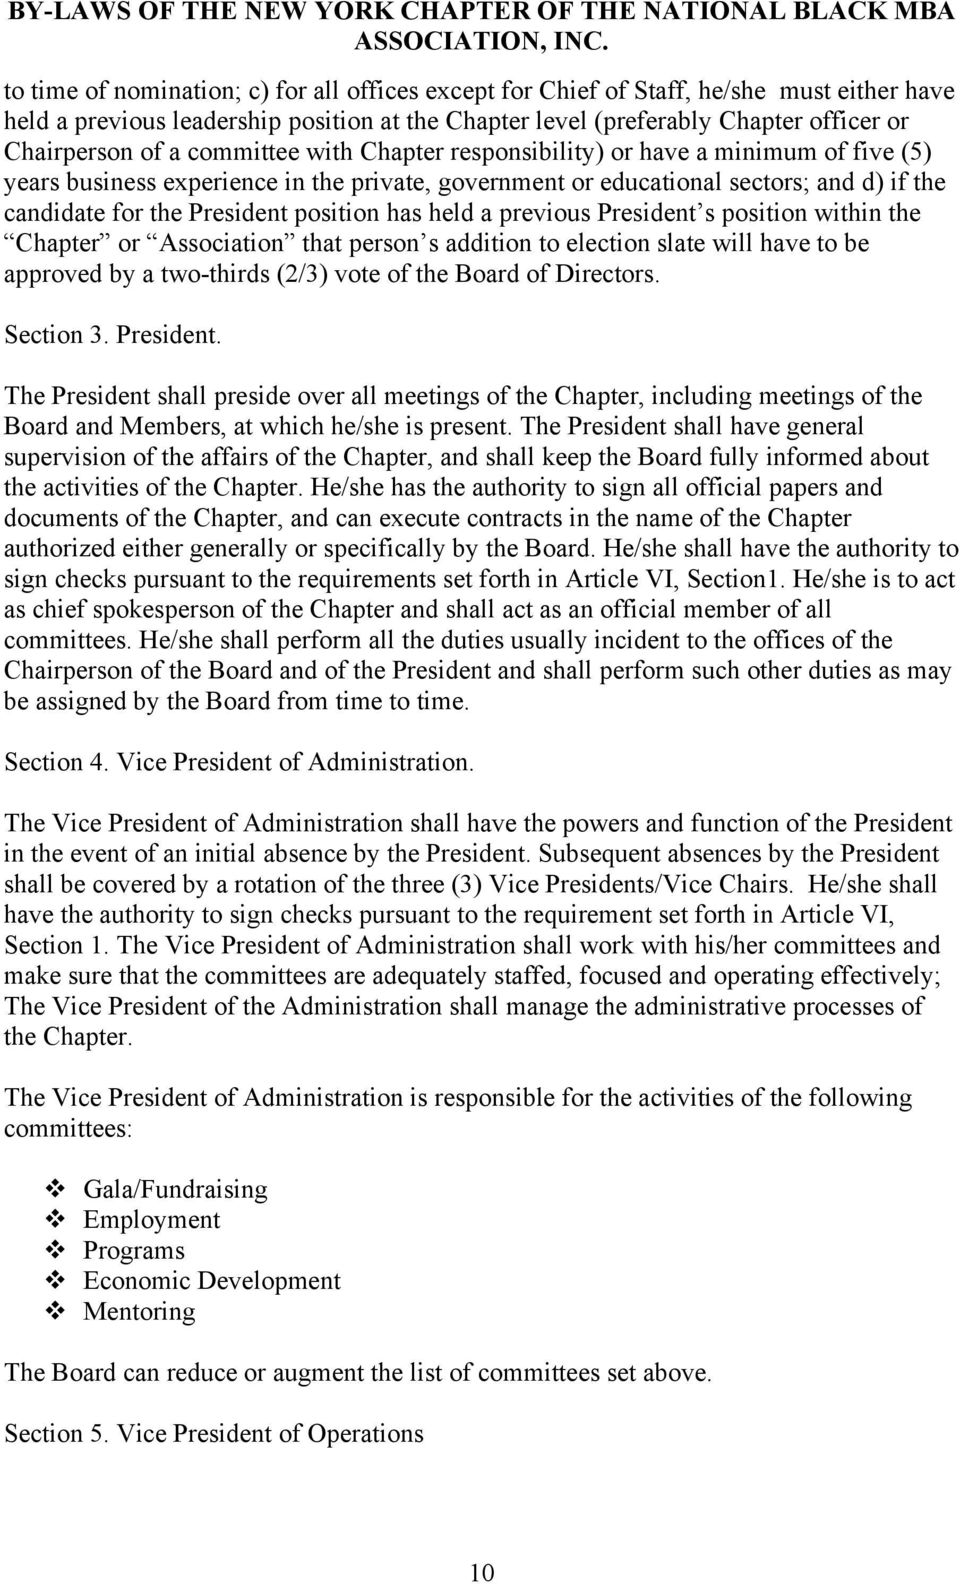 has held a previous President s position within the Chapter or Association that person s addition to election slate will have to be approved by a two-thirds (2/3) vote of the Board of Directors.